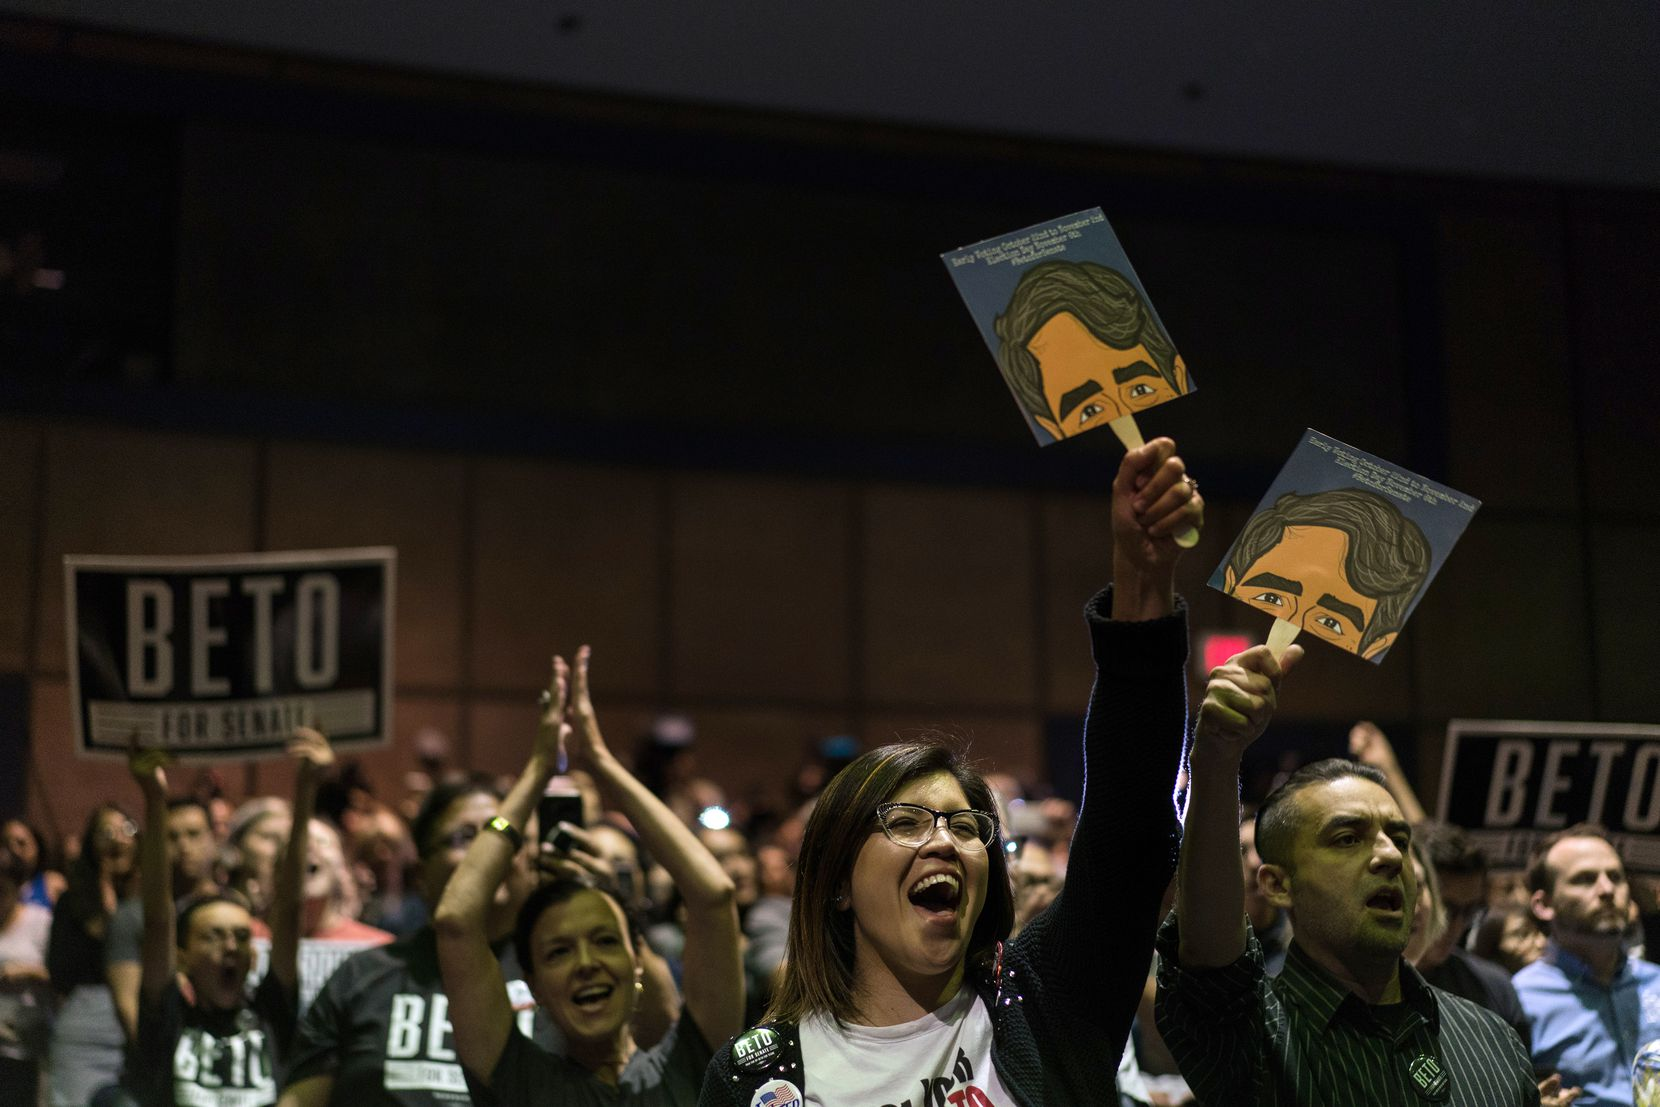 Supporters cheered for Rep. Beto O'Rourke, the Democratic challenger to Sen. Ted Cruz, as he campaigned at the University of Texas at El Paso earlier this week. (Todd Heisler/The New York Times)